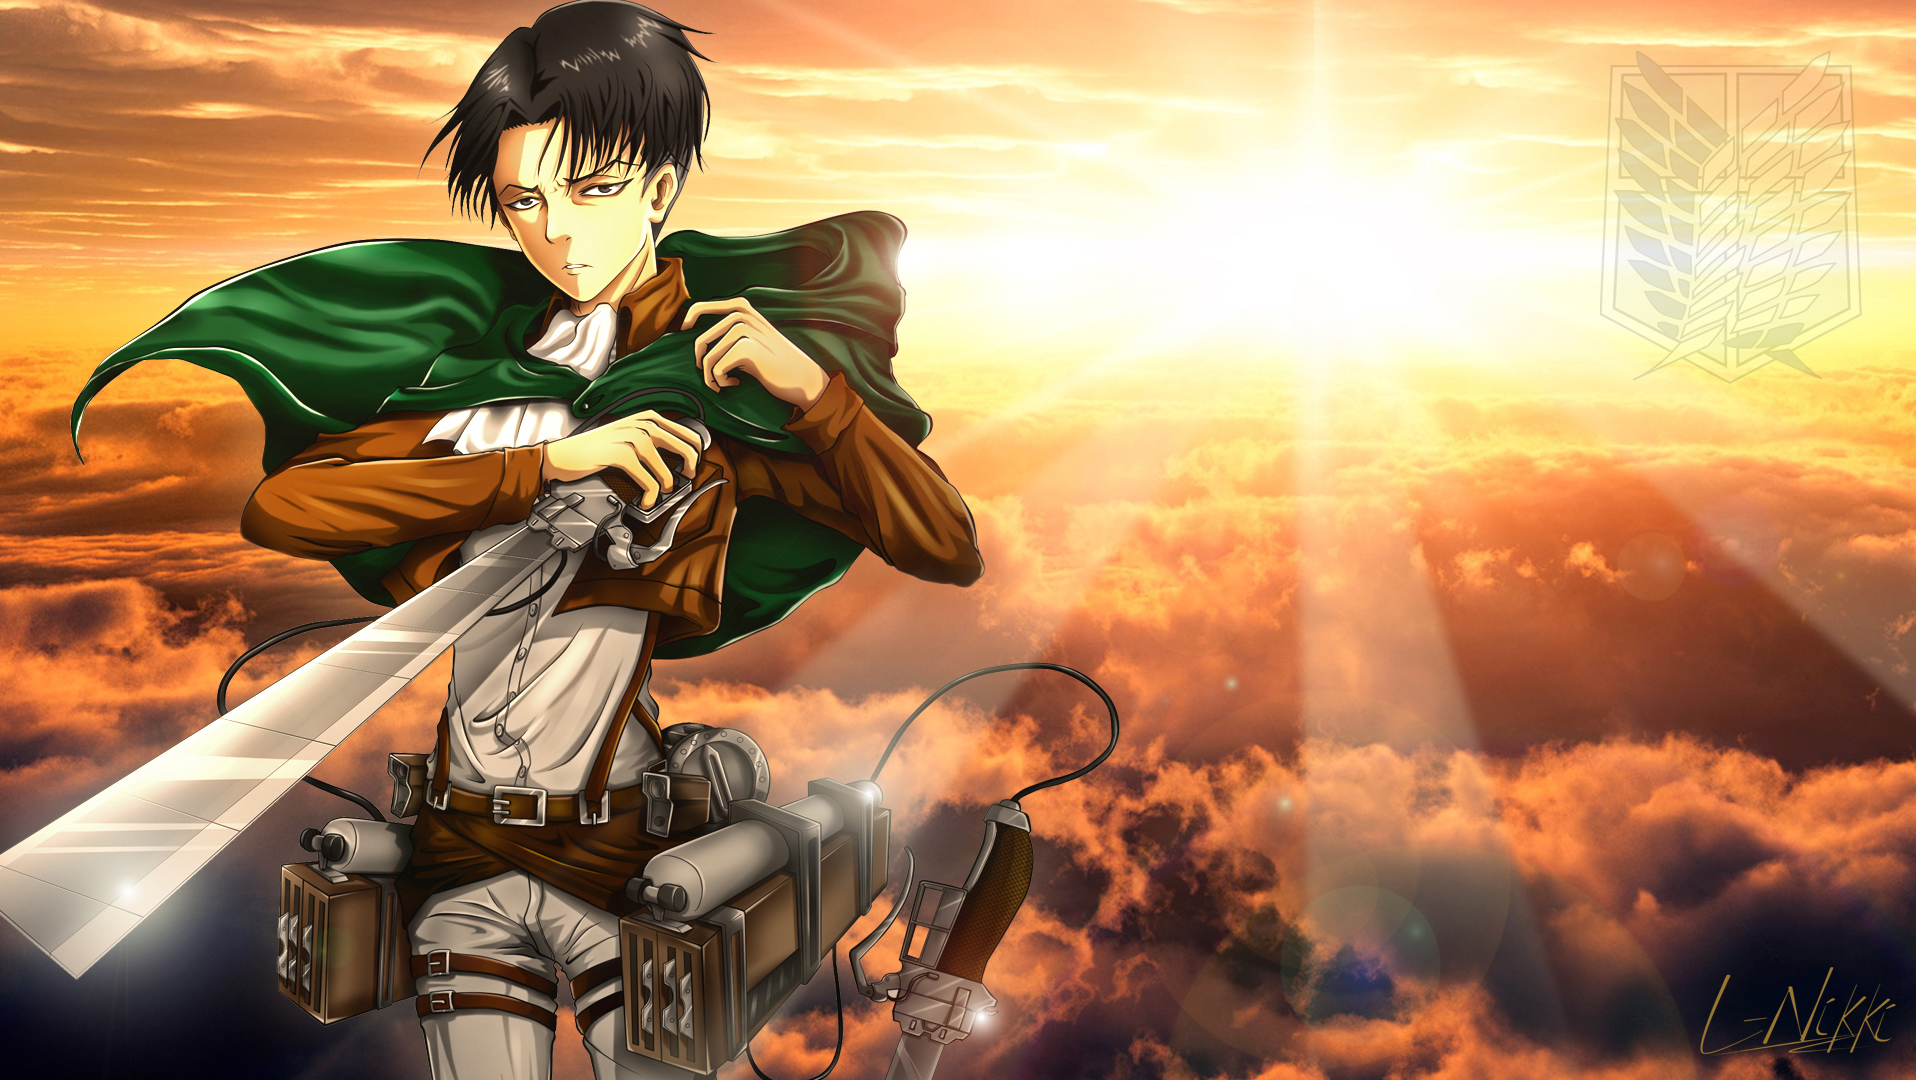 Download Wallpaper From Anime Attack On Titan With Tags Pictures